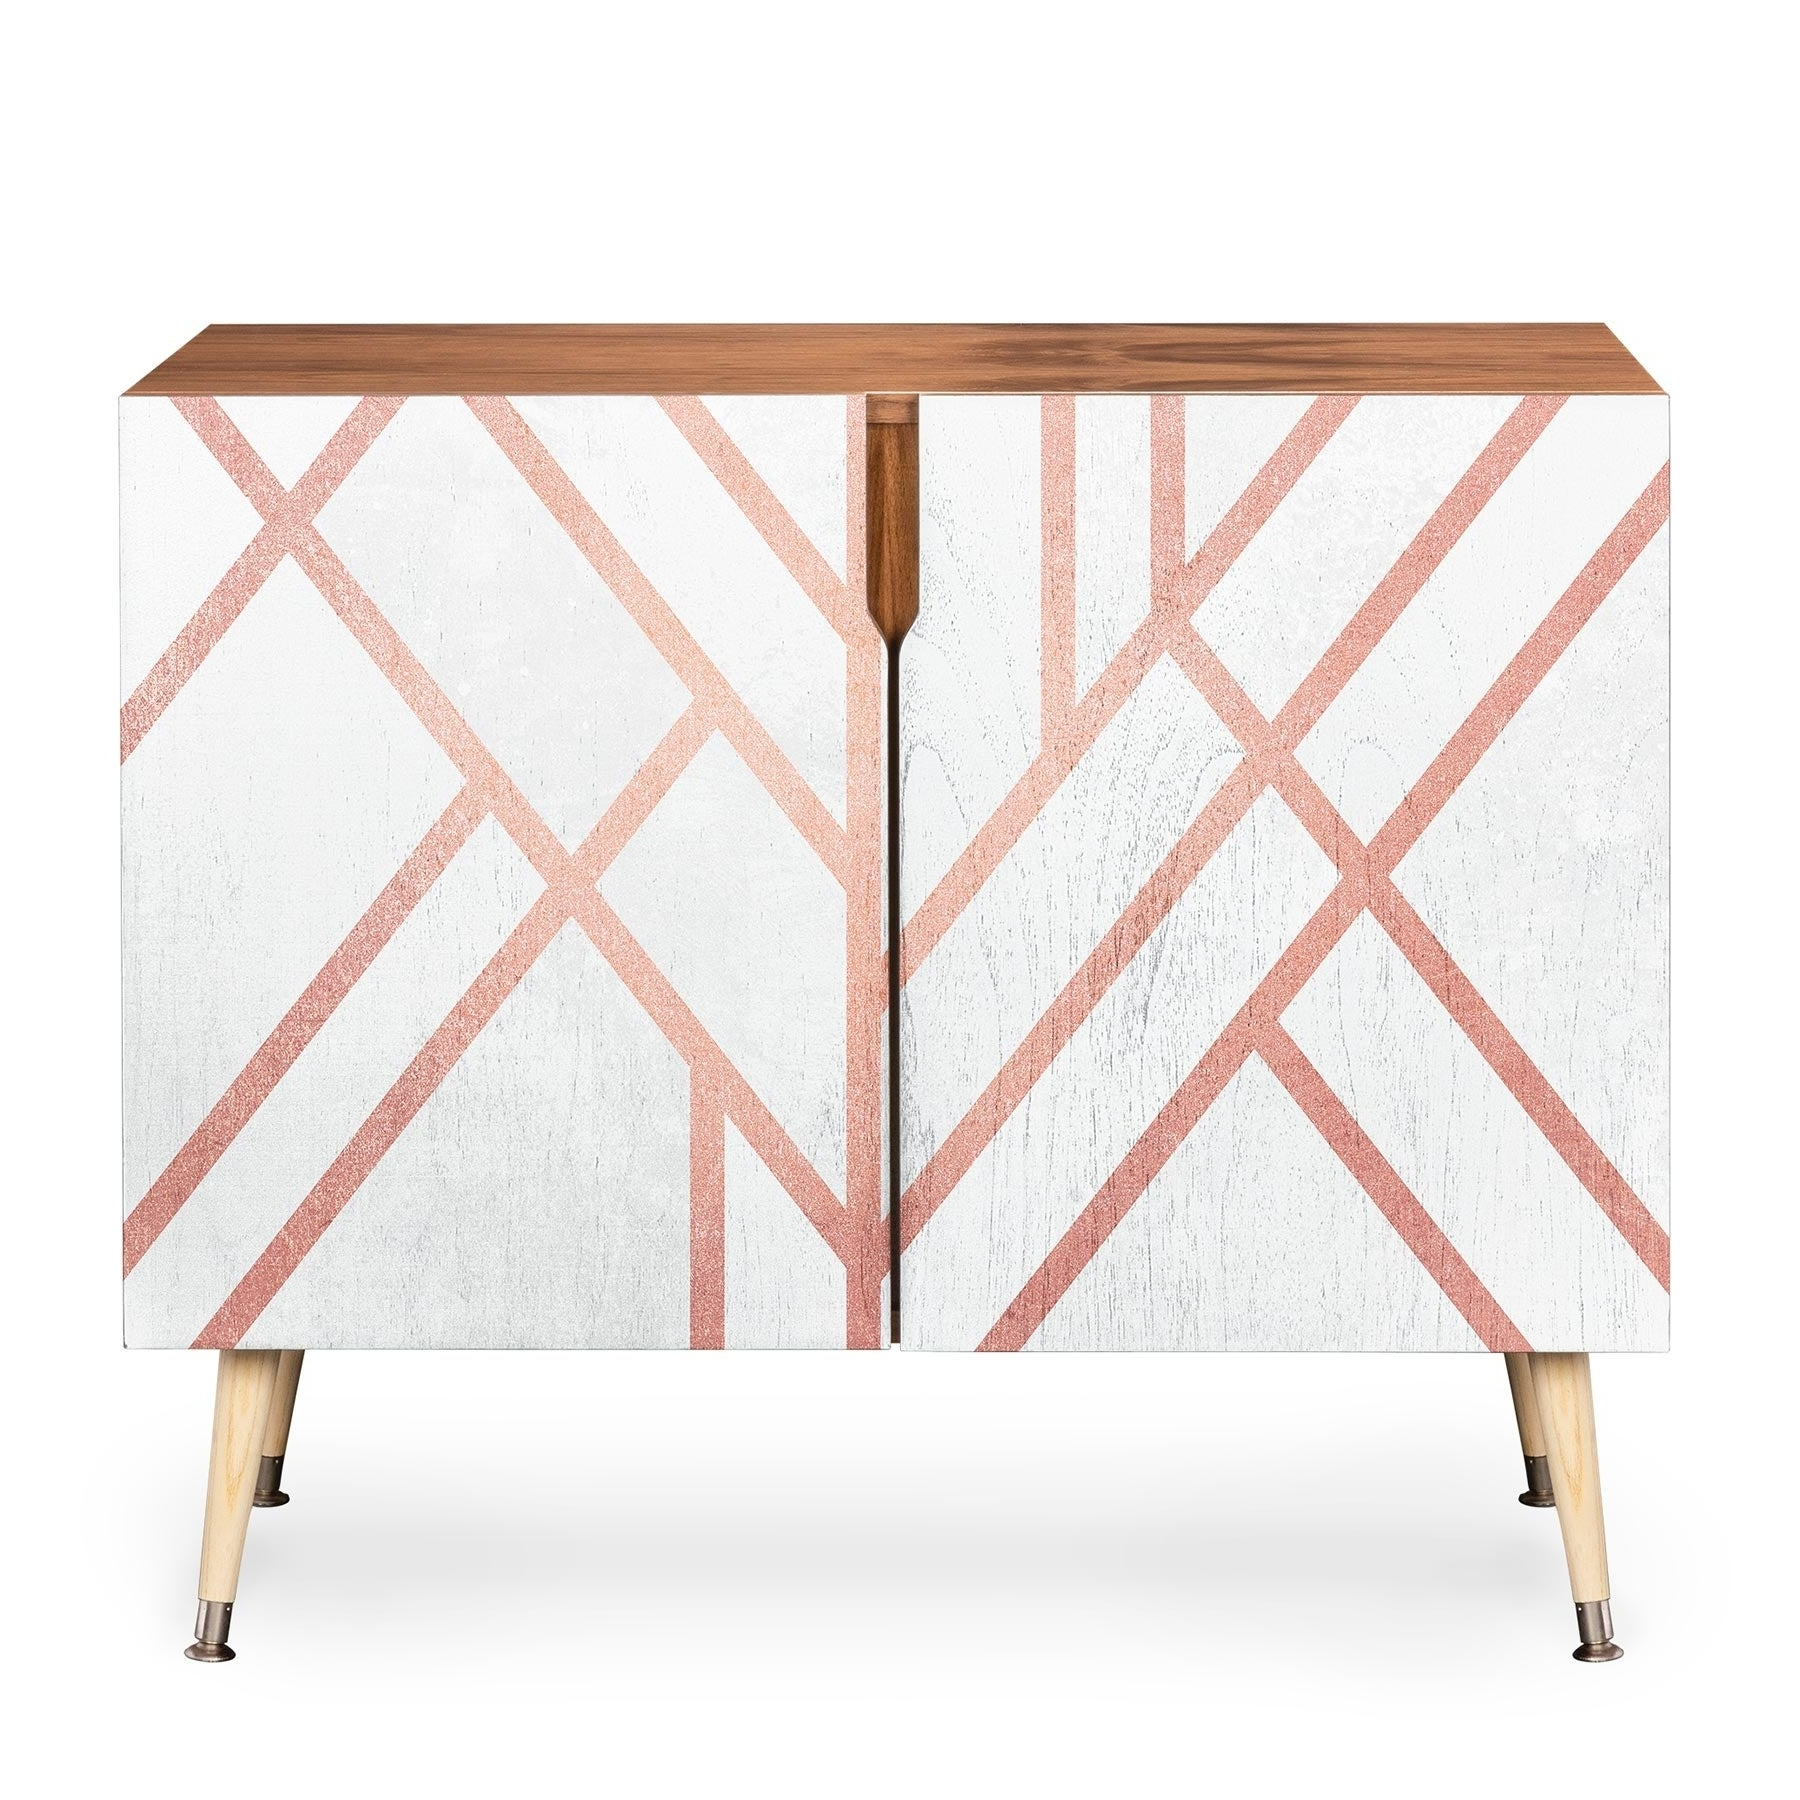 Deny Designs Pink And White Geometric Credenza (Birch Or Walnut, 3 Leg  Options) With Regard To Line Geo Credenzas (View 7 of 20)